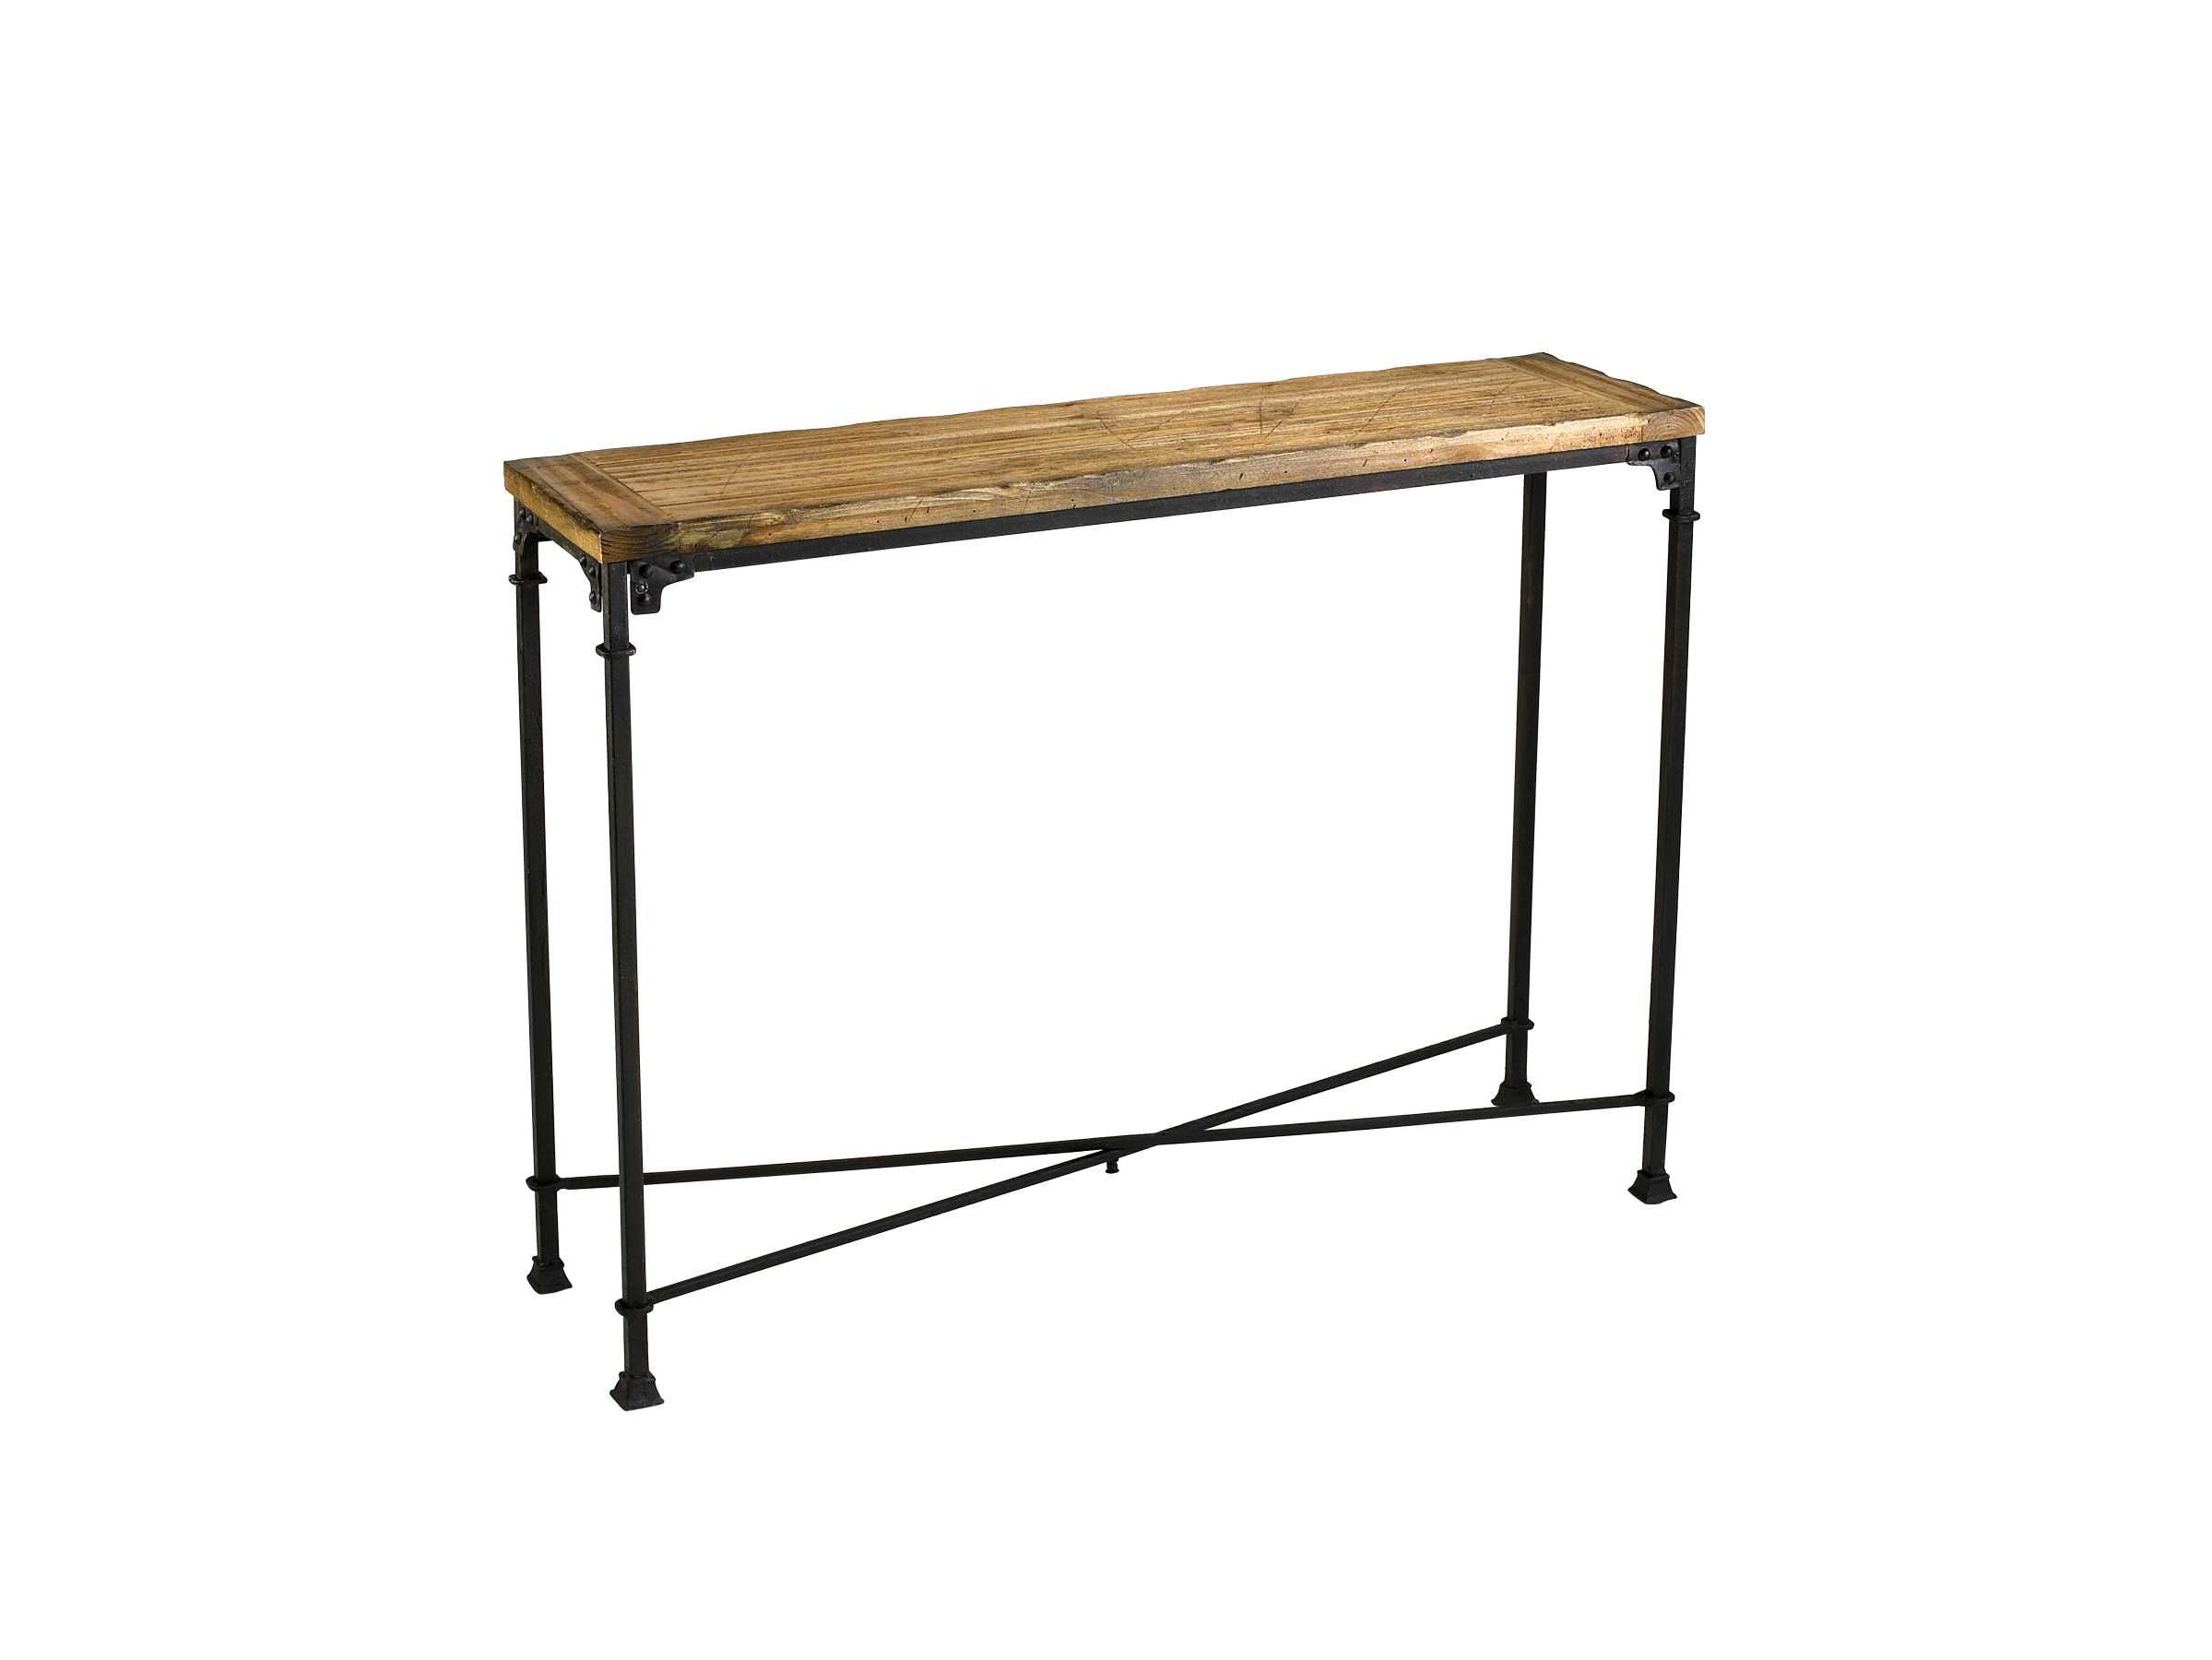 Cyan design 42 5 x 12 rectangular cunningham console table for 42 sofa table